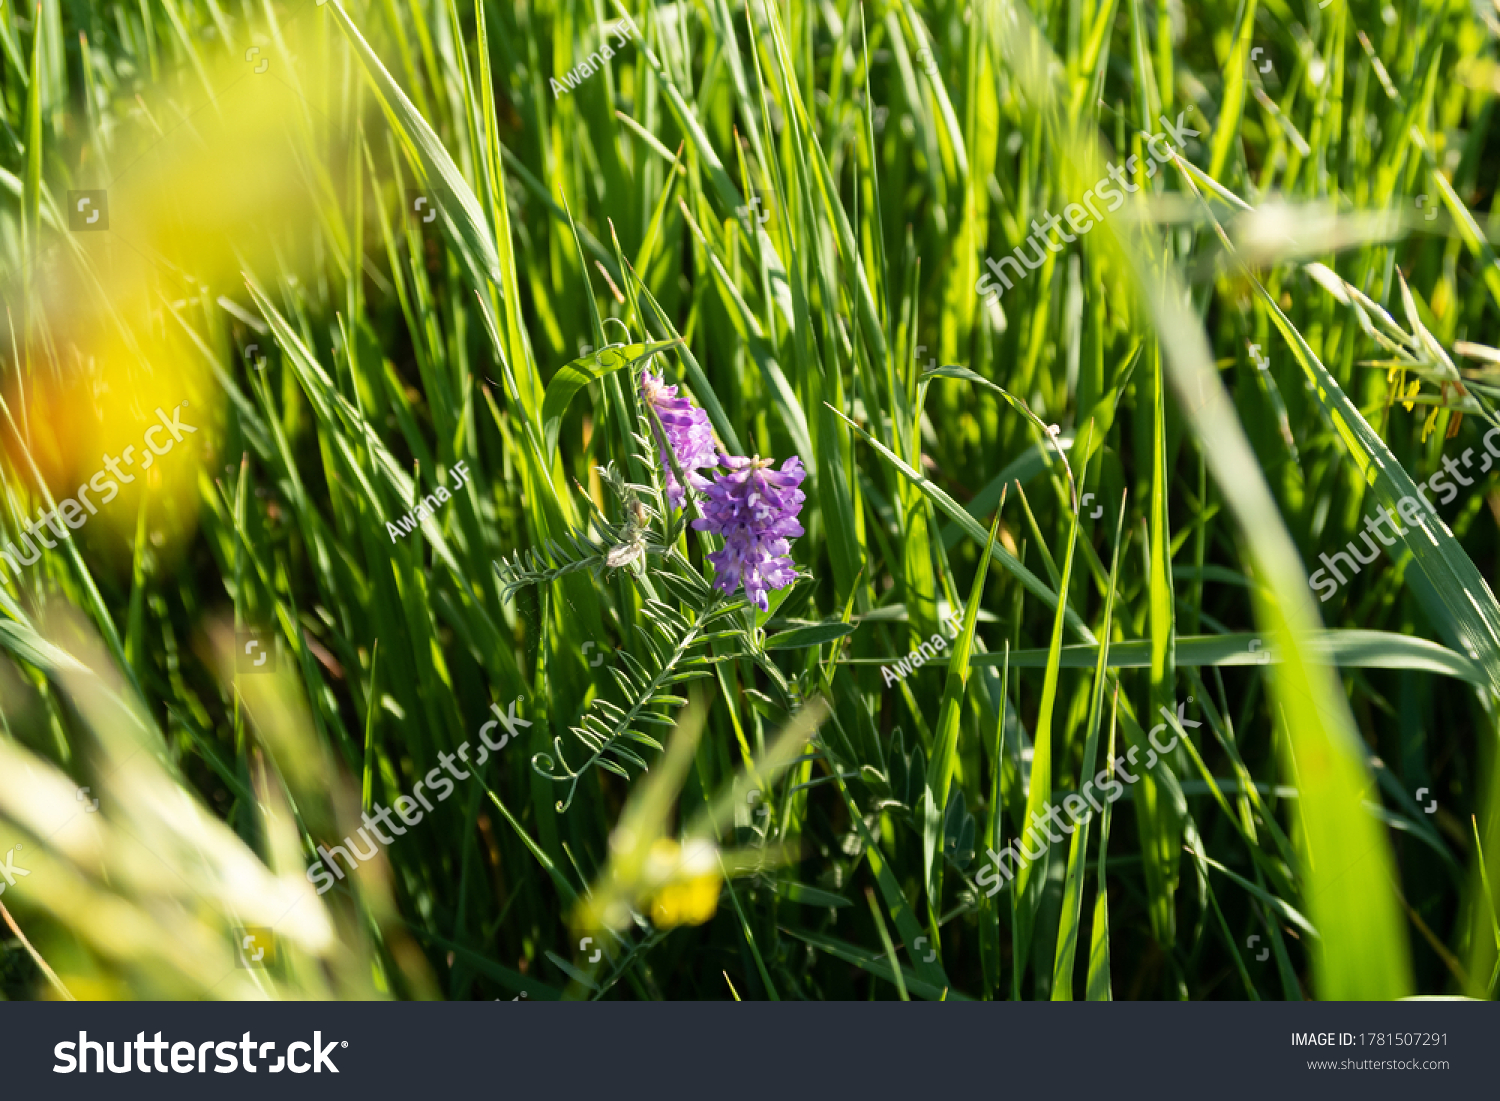 stock-photo-view-of-a-wild-purple-flower